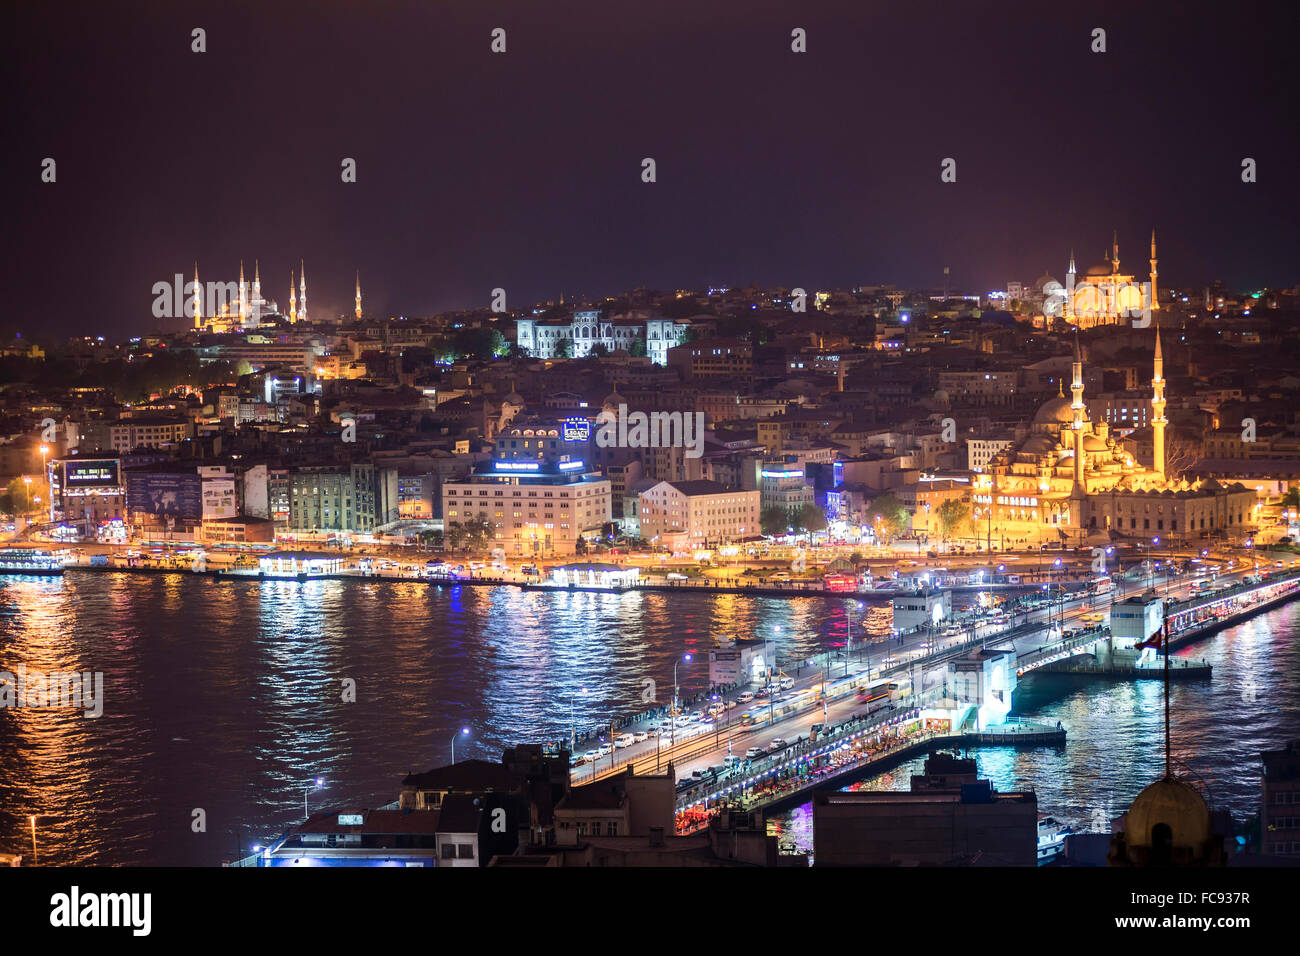 Istanbul at night, with Blue Mosque on left, New Mosque on right and Galata Bridge across Golden Horn, Turkey, Europe - Stock Image